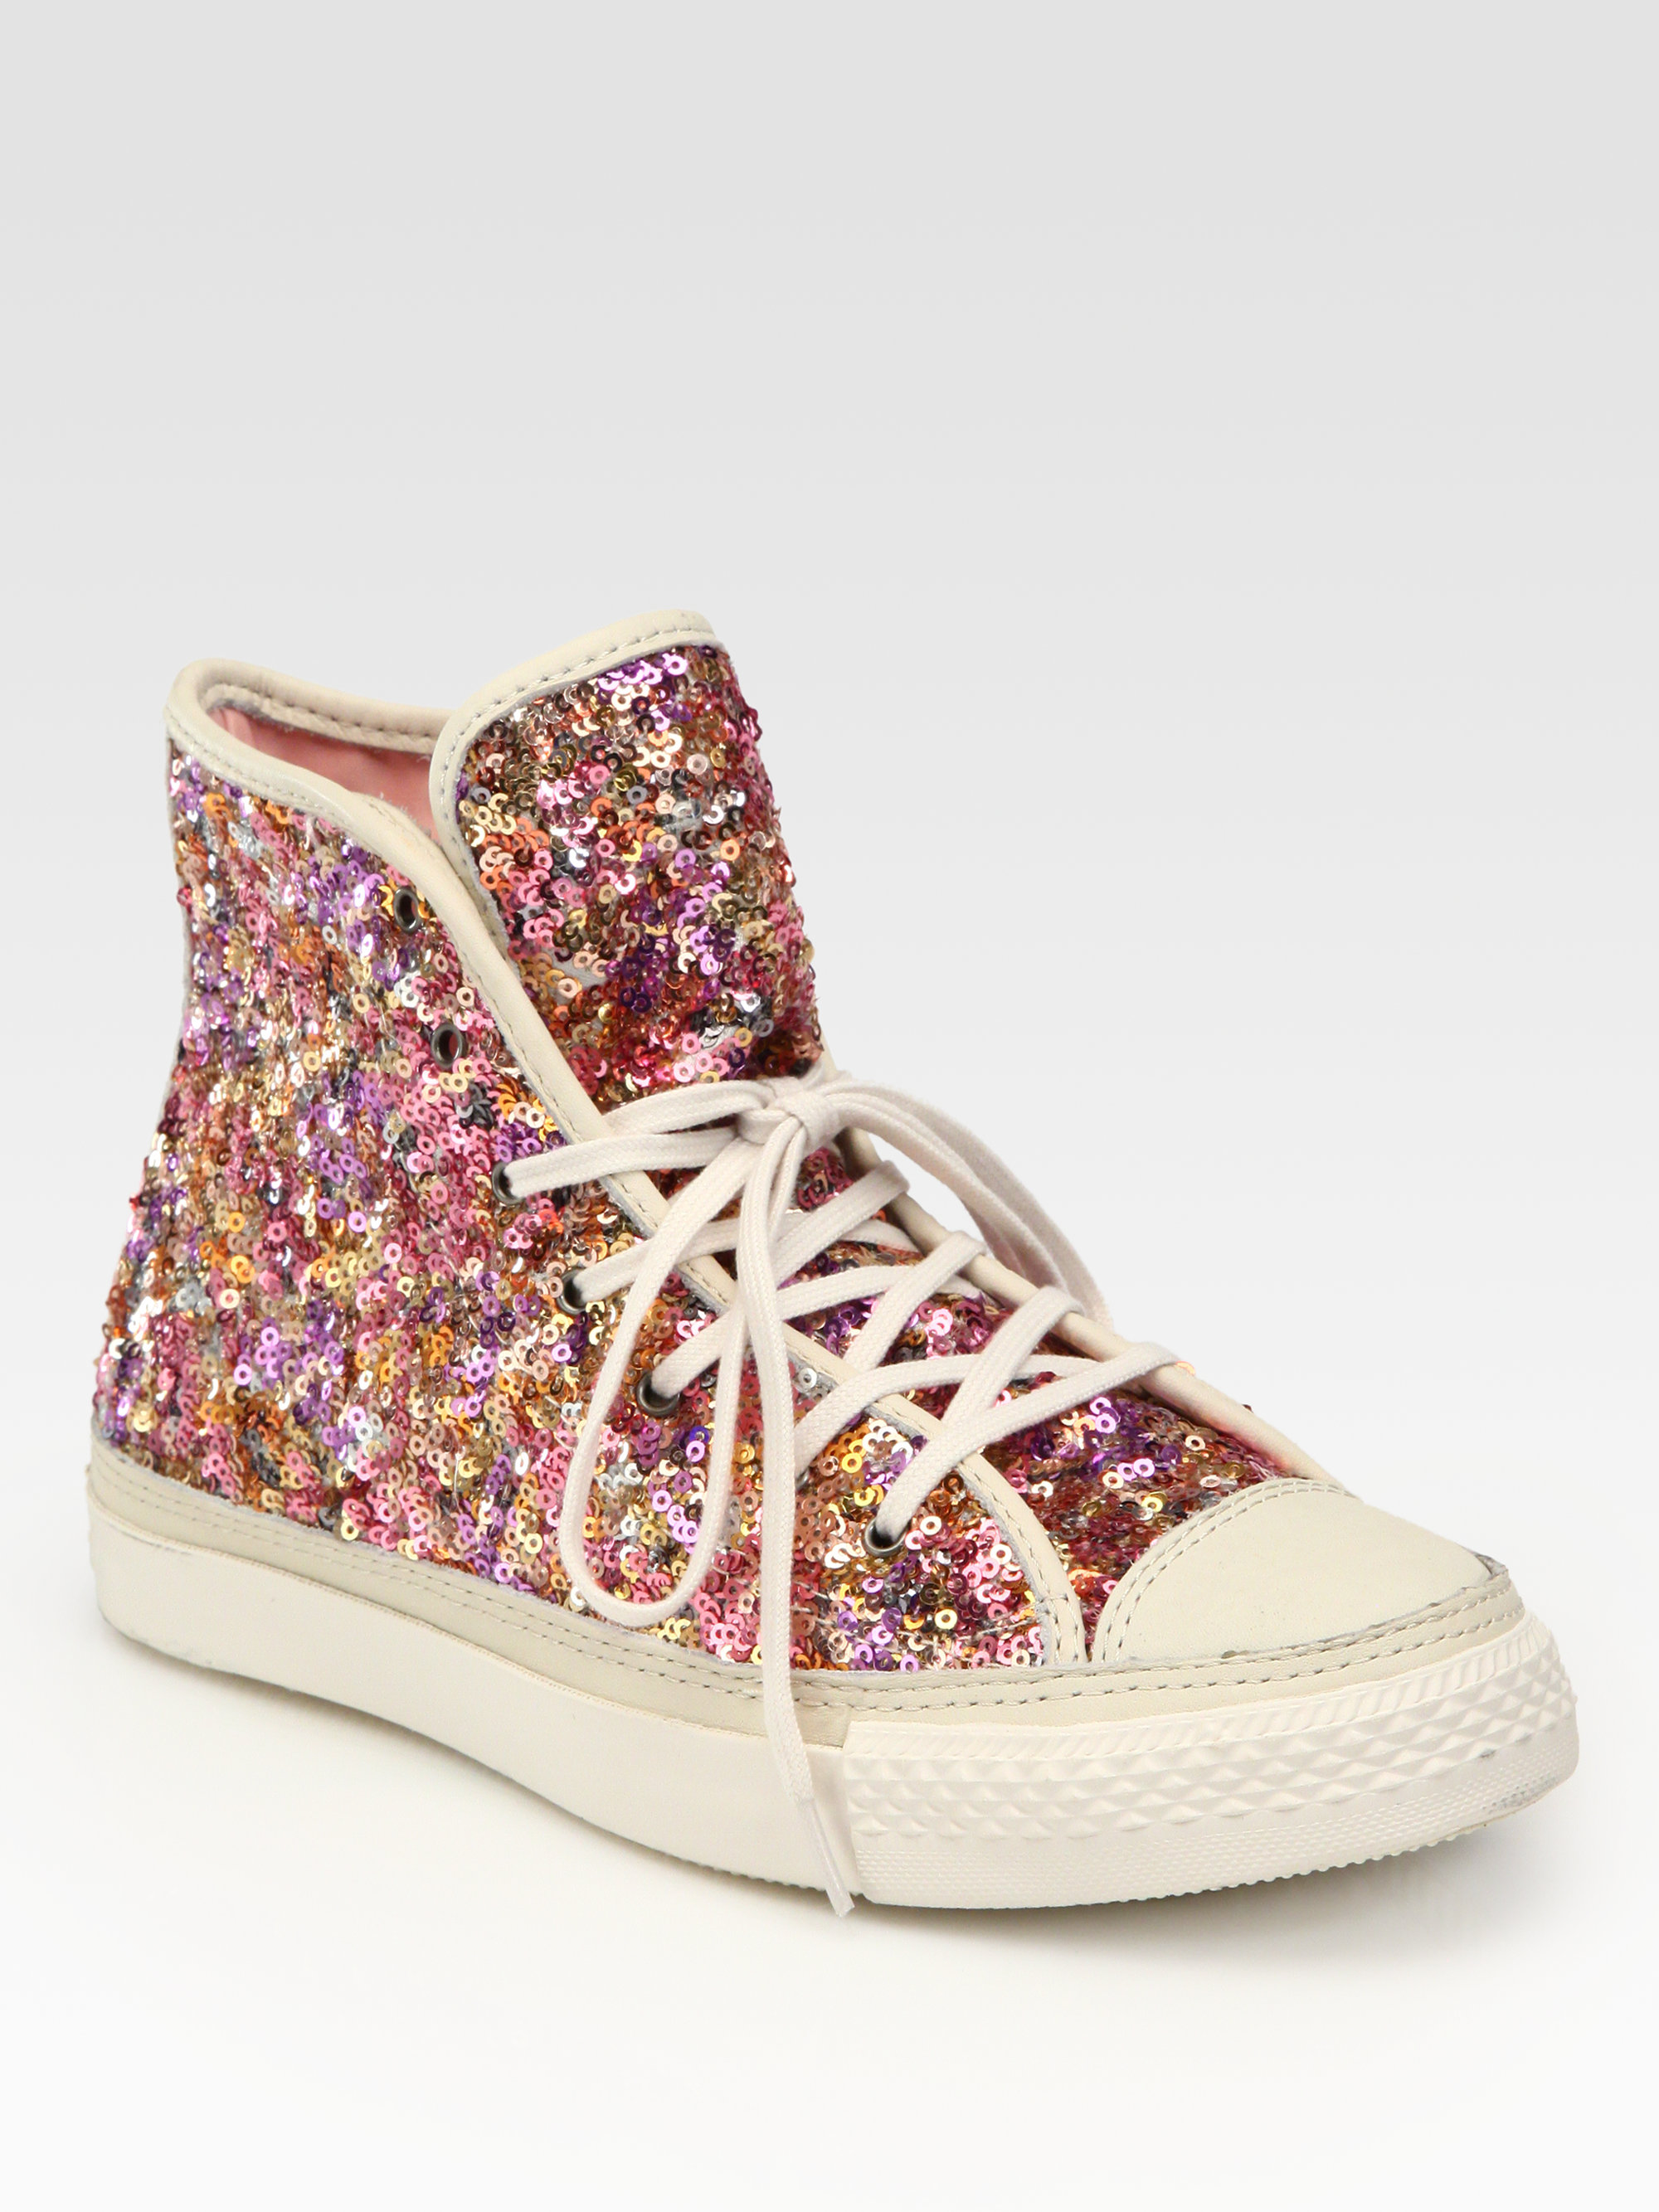 ... wholesale lyst converse sequin hightop sneakers in pink b4058 2bb04 b72c01781